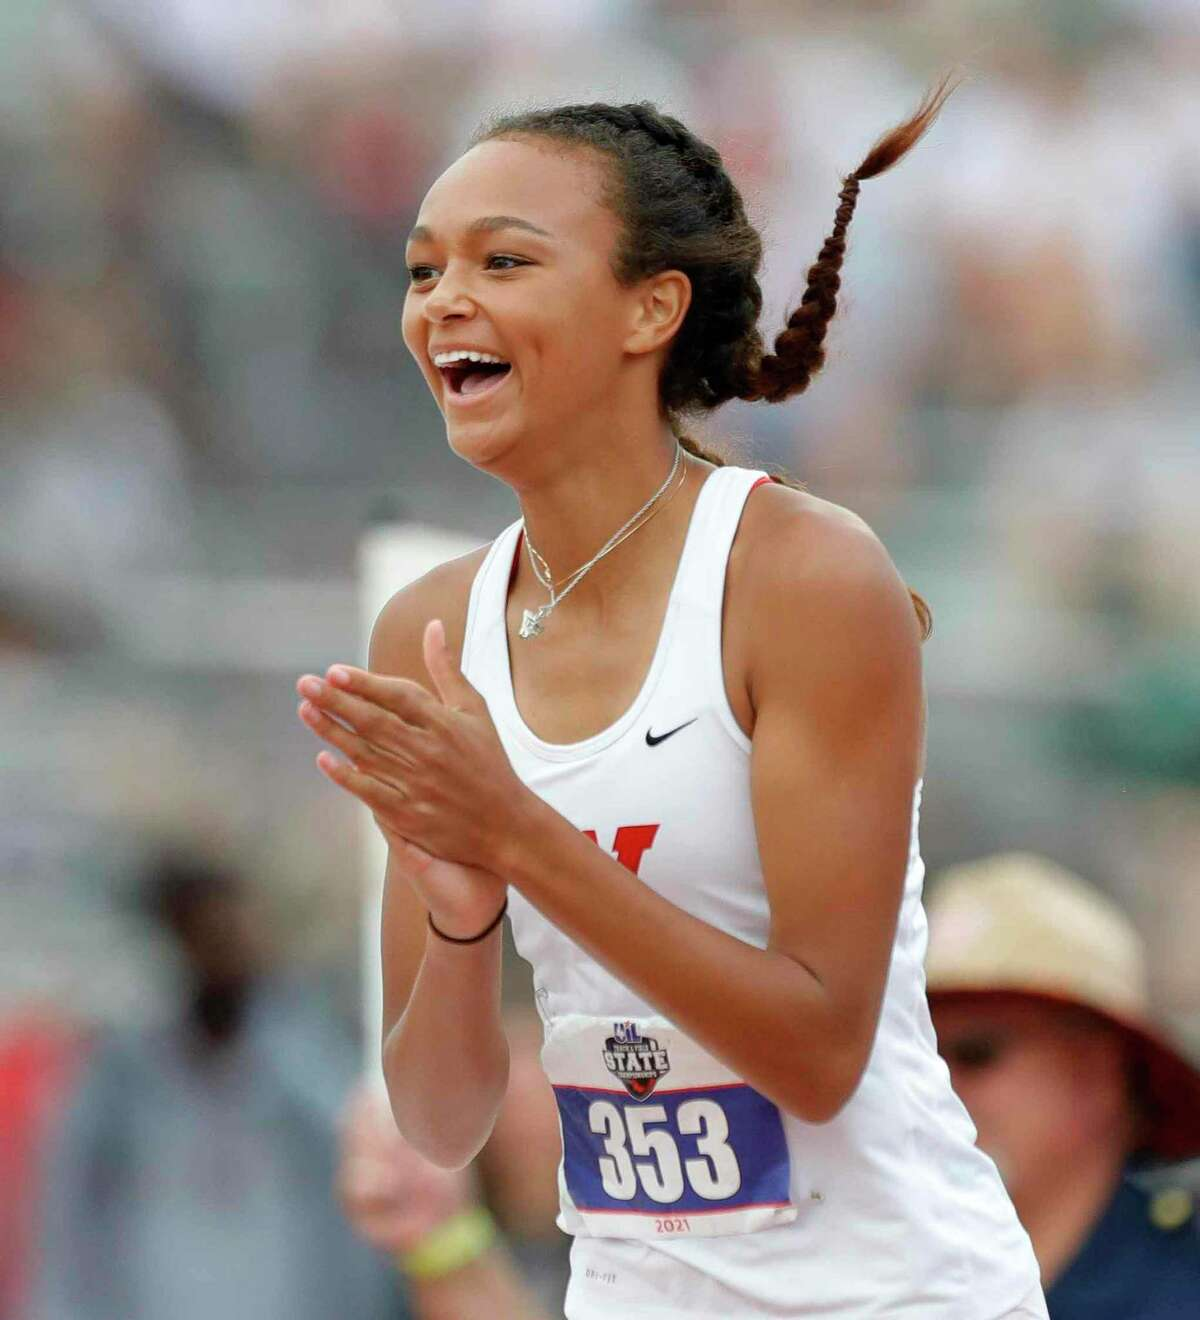 Kennedy Doakes of The Woodlands reacts after finishing first in the girls high jump during the Class 6A UIL Track and Field Championships at Mike A. Myers Stadium, Saturday, May 8, 2021, in Austin.